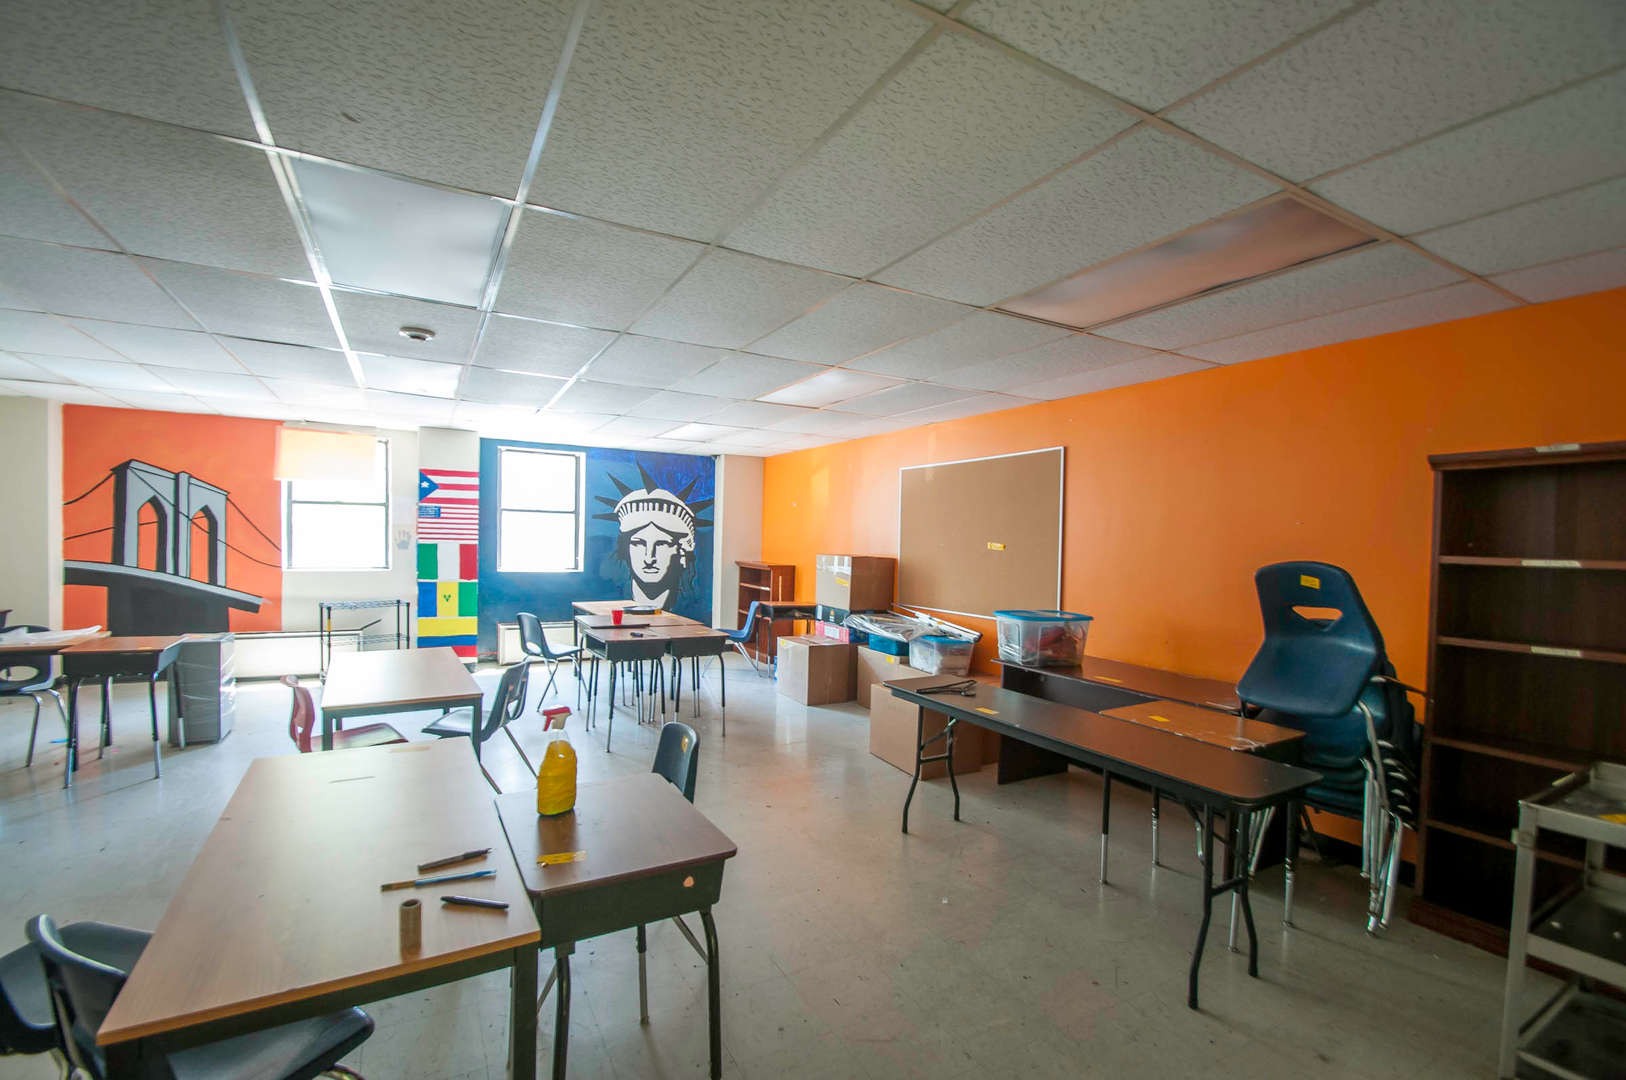 Interior Art Room with Brooklyn Bridge mural on far wall